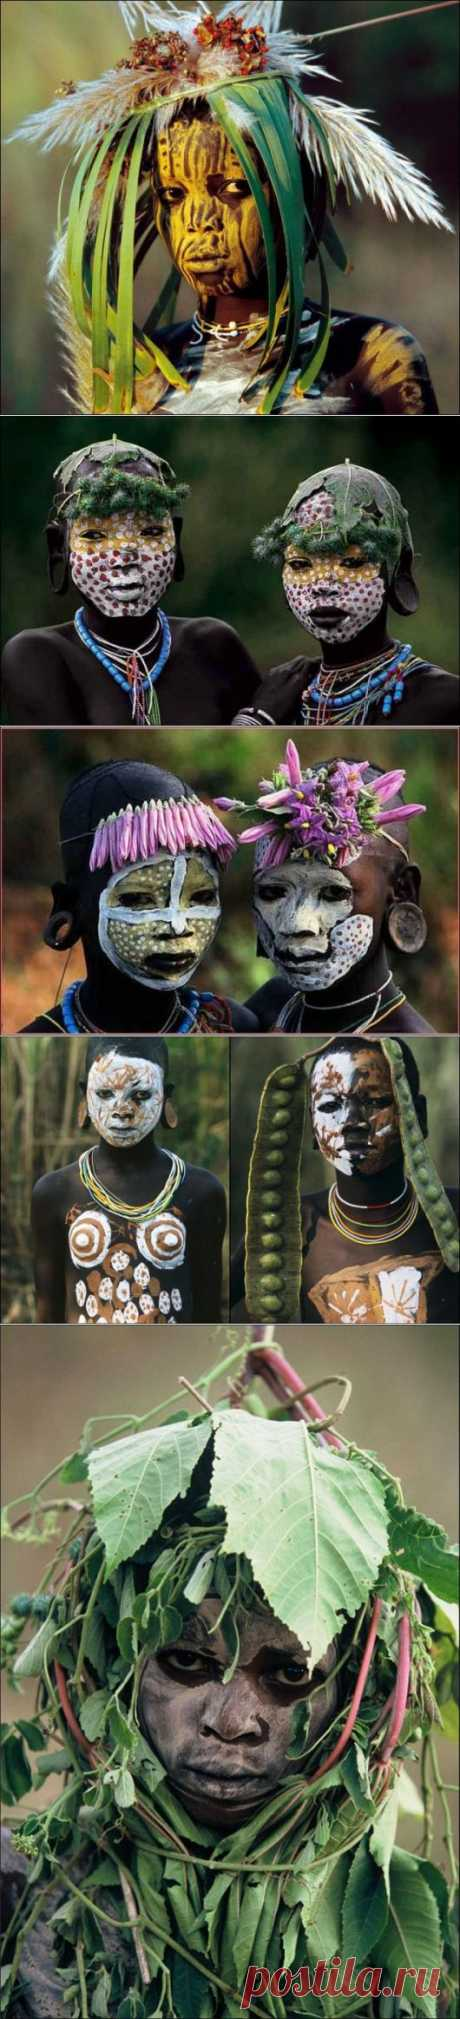 Fashionable ladies of the tribe of Omo.